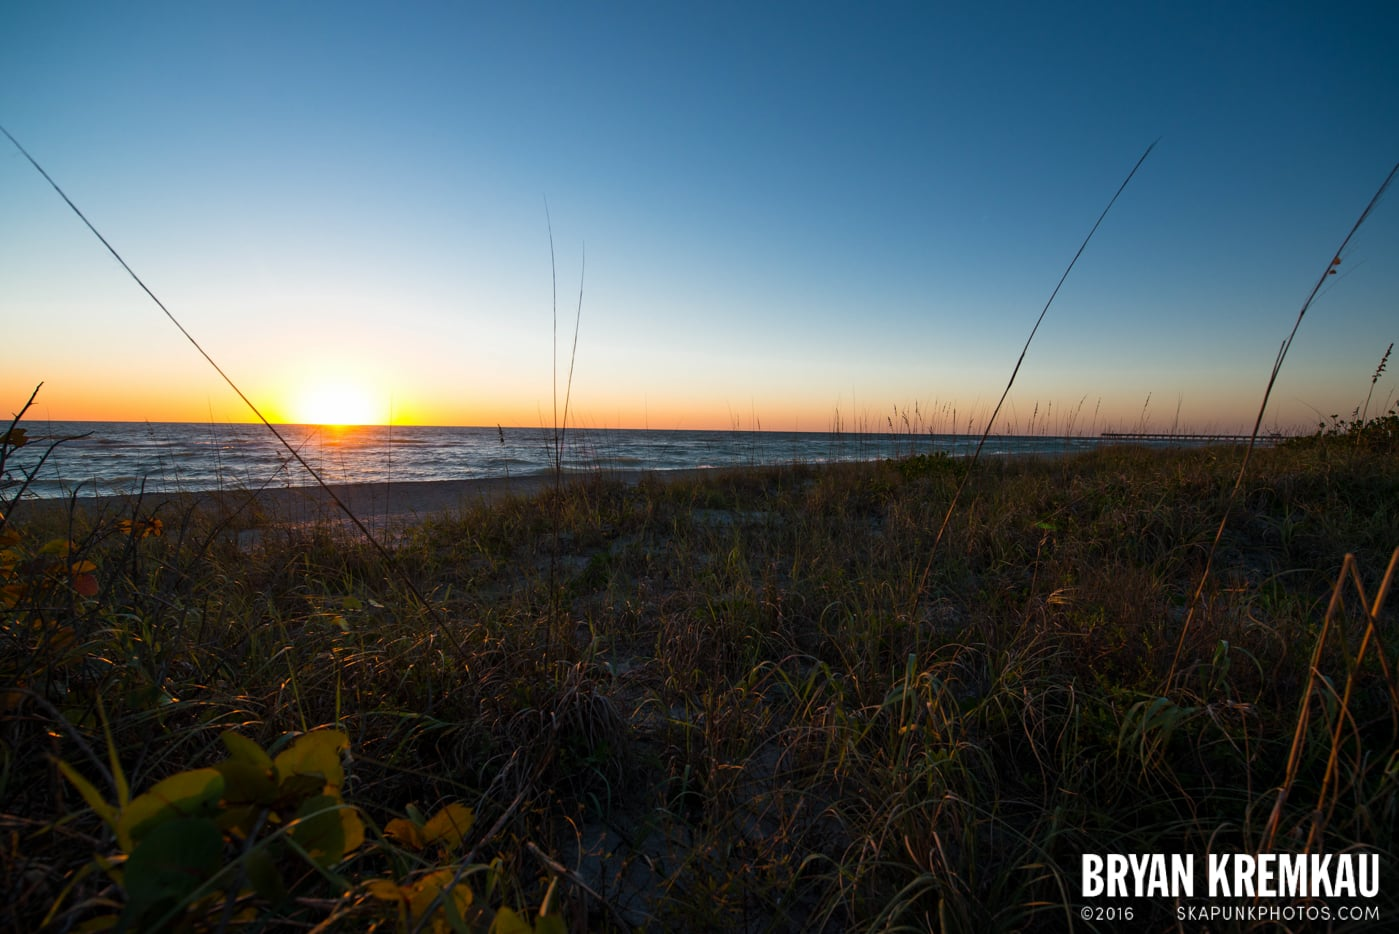 Sunsets, Astrophotography & Birds @ Venice, Florida - 10.25.14 - 11.5.14 (100)